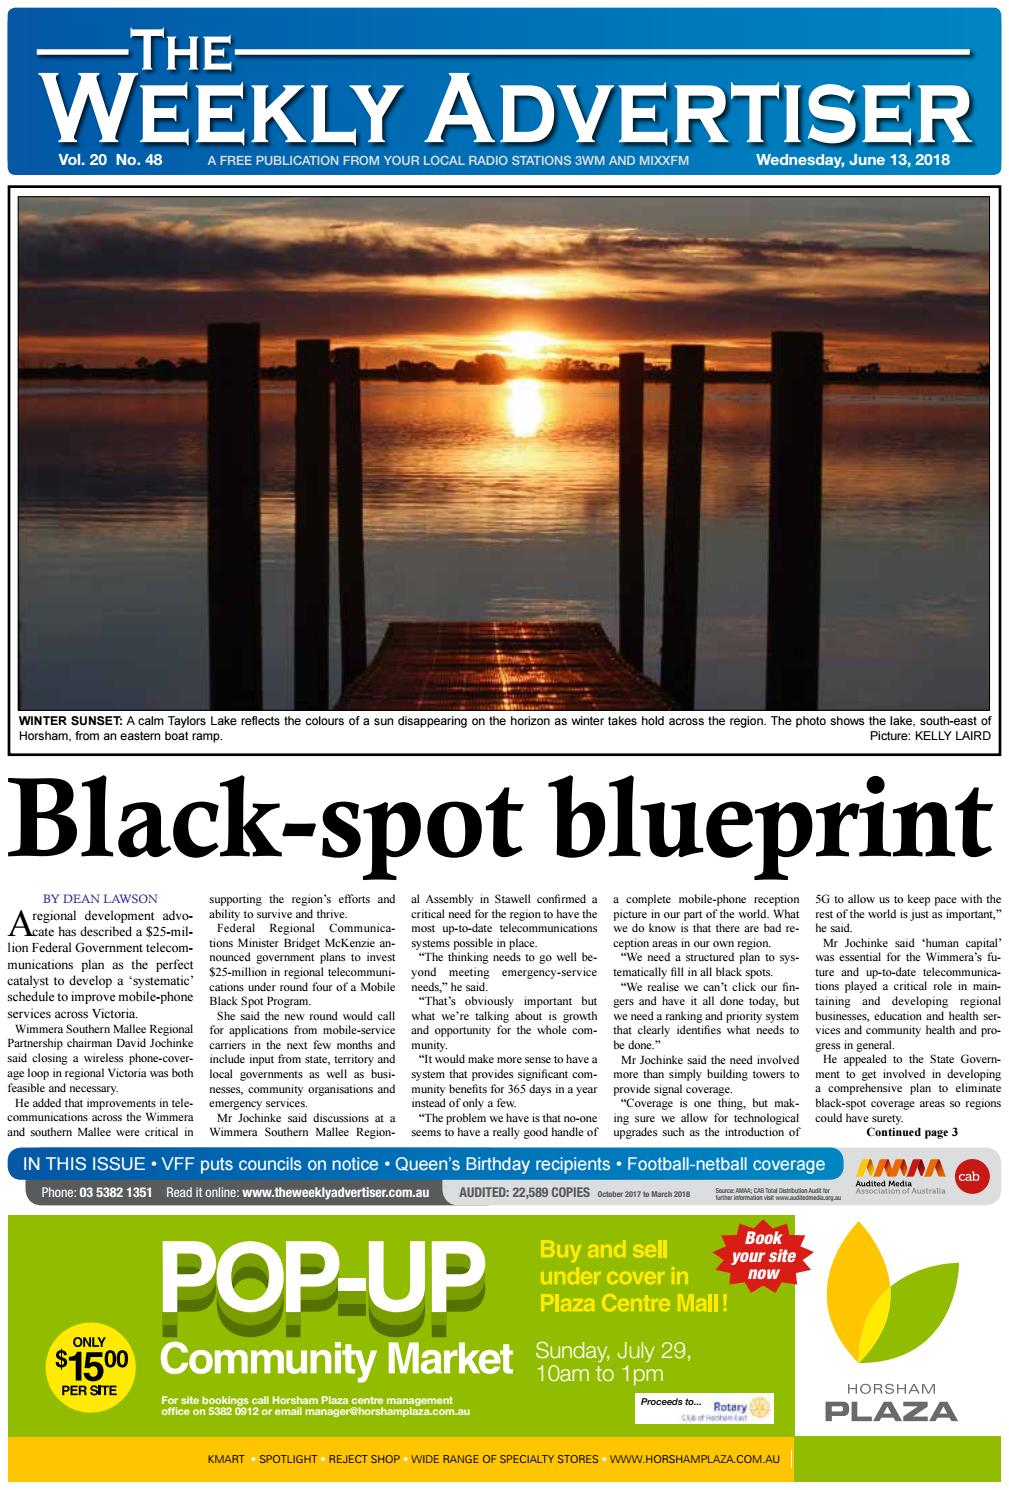 976878b9d The Weekly Advertiser - Wednesday